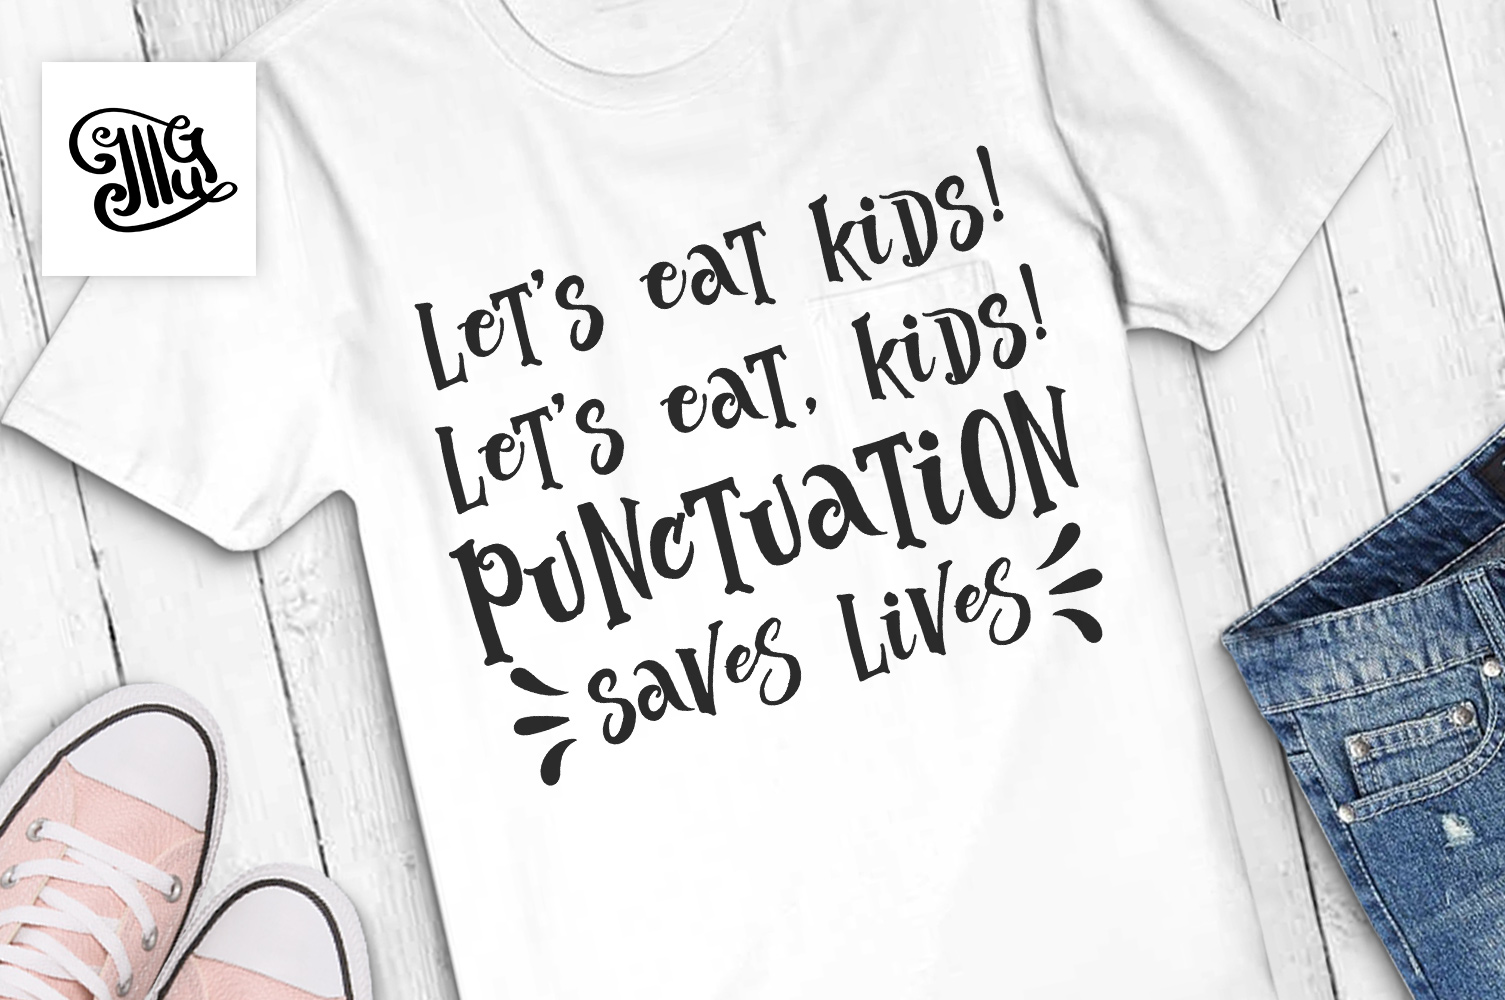 Let's eat kids! Let's eat, kids! Punctuation saves lives example image 1